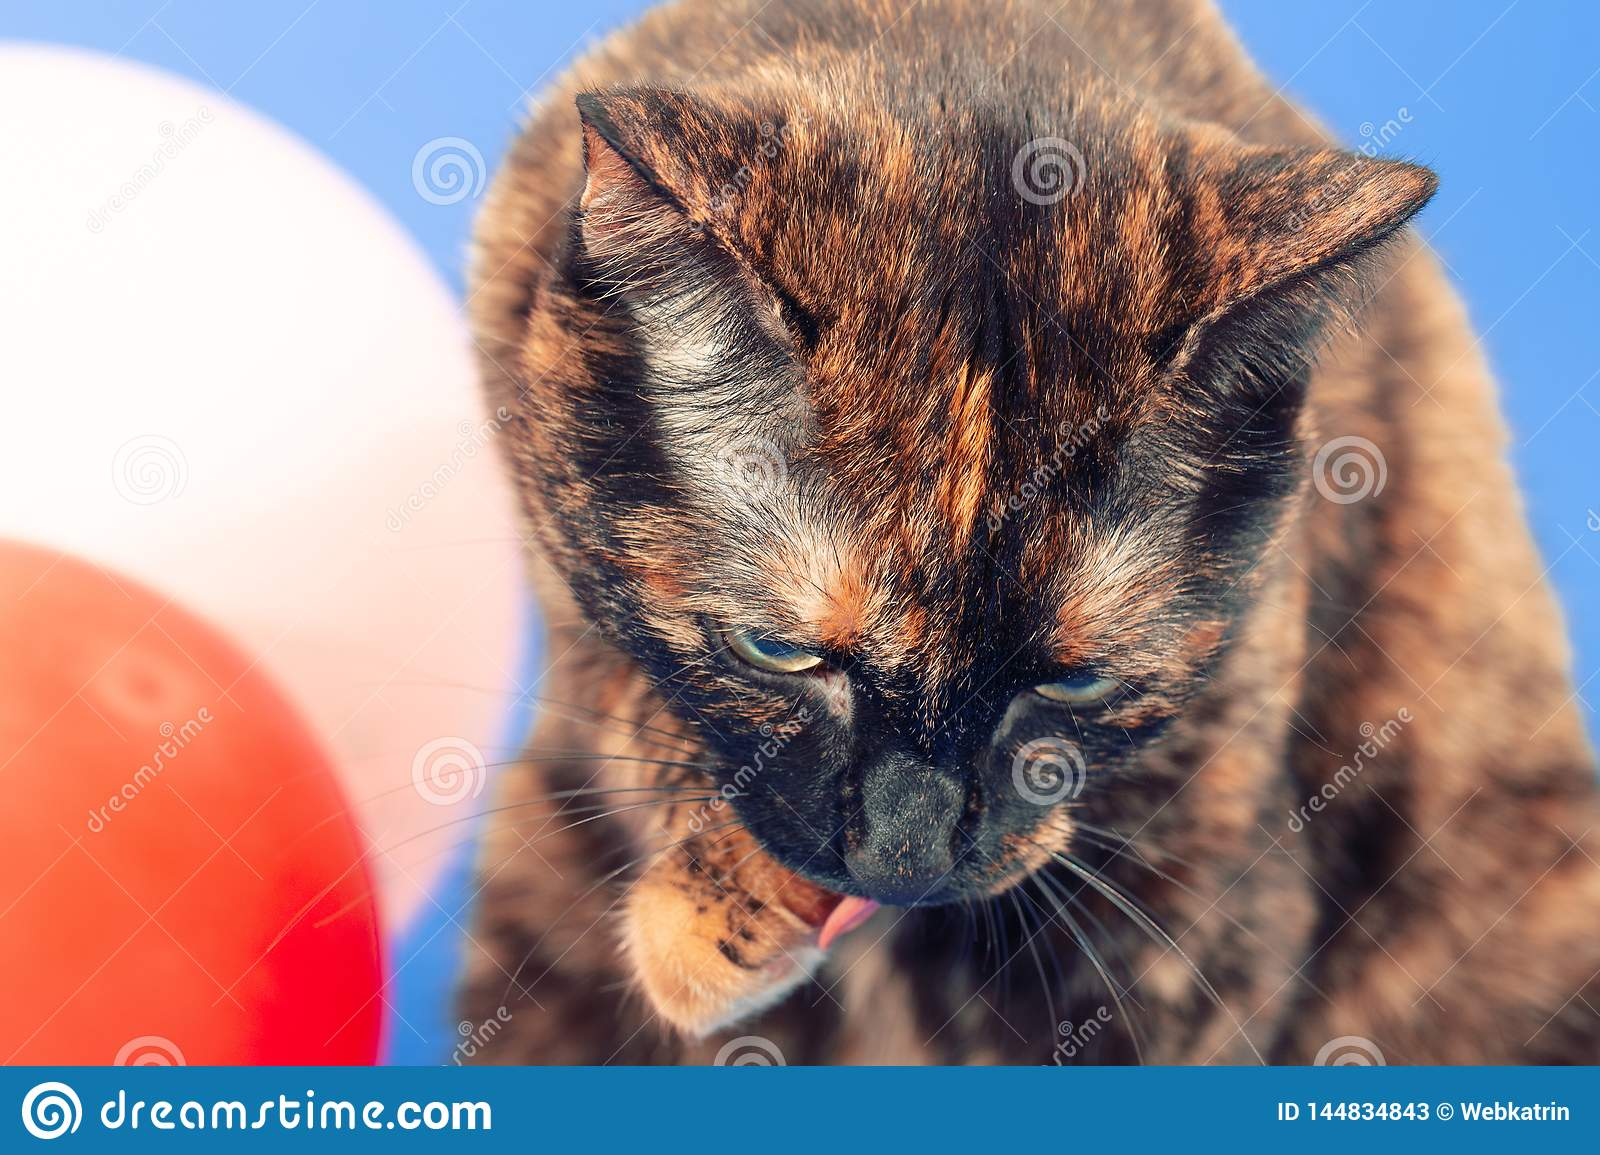 Black and red tortoiseshell cat on a blue background next to inflatable balloons